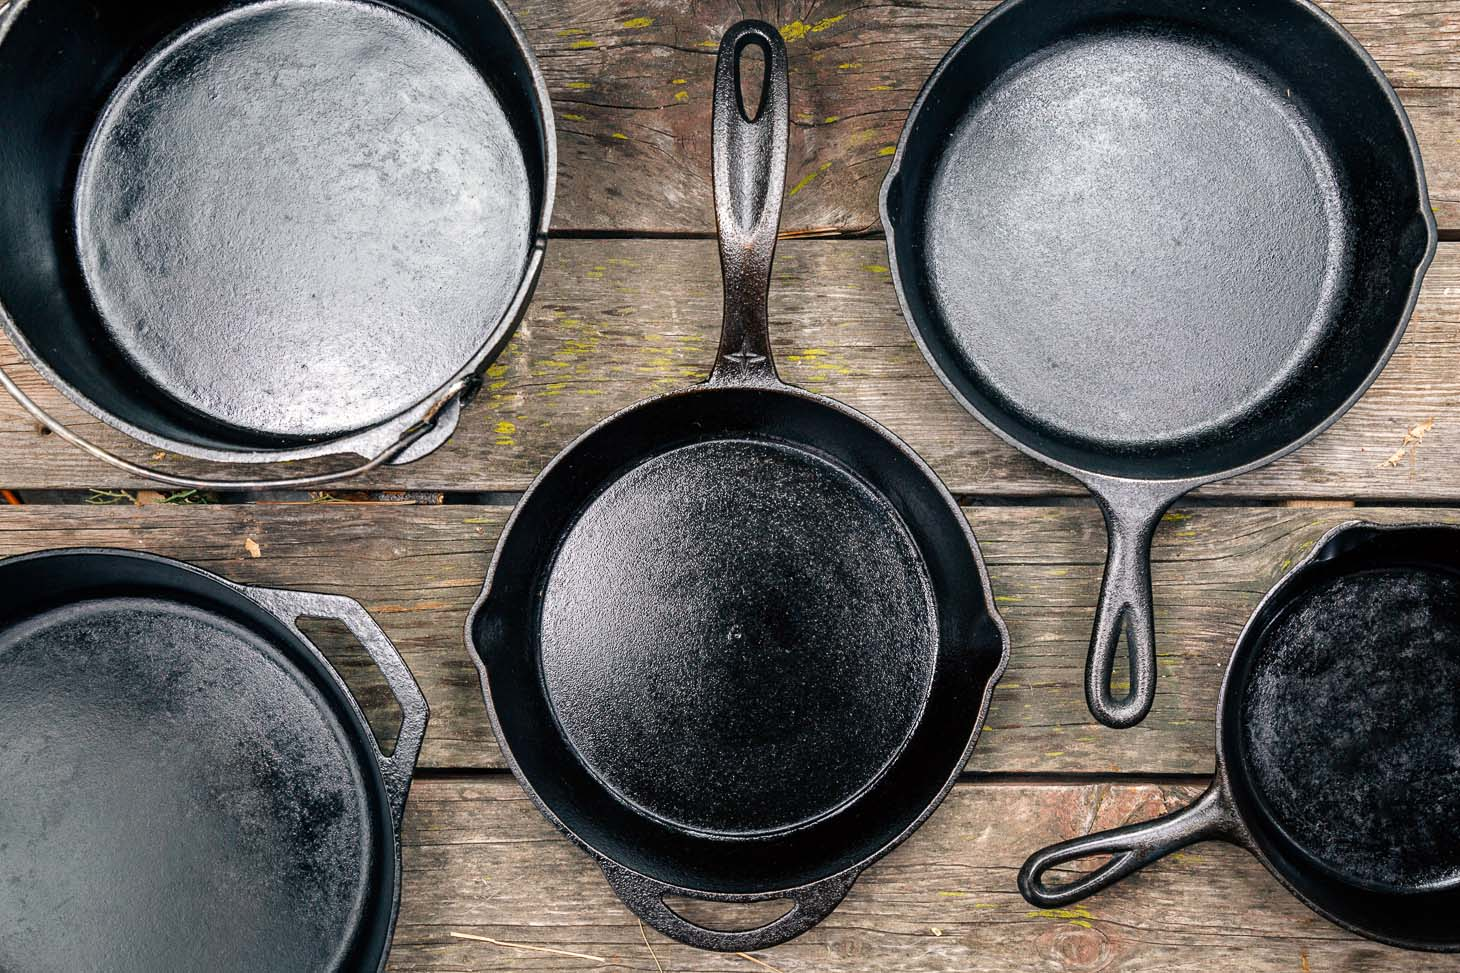 Cast iron skillets and Dutch oven on a wooden surface